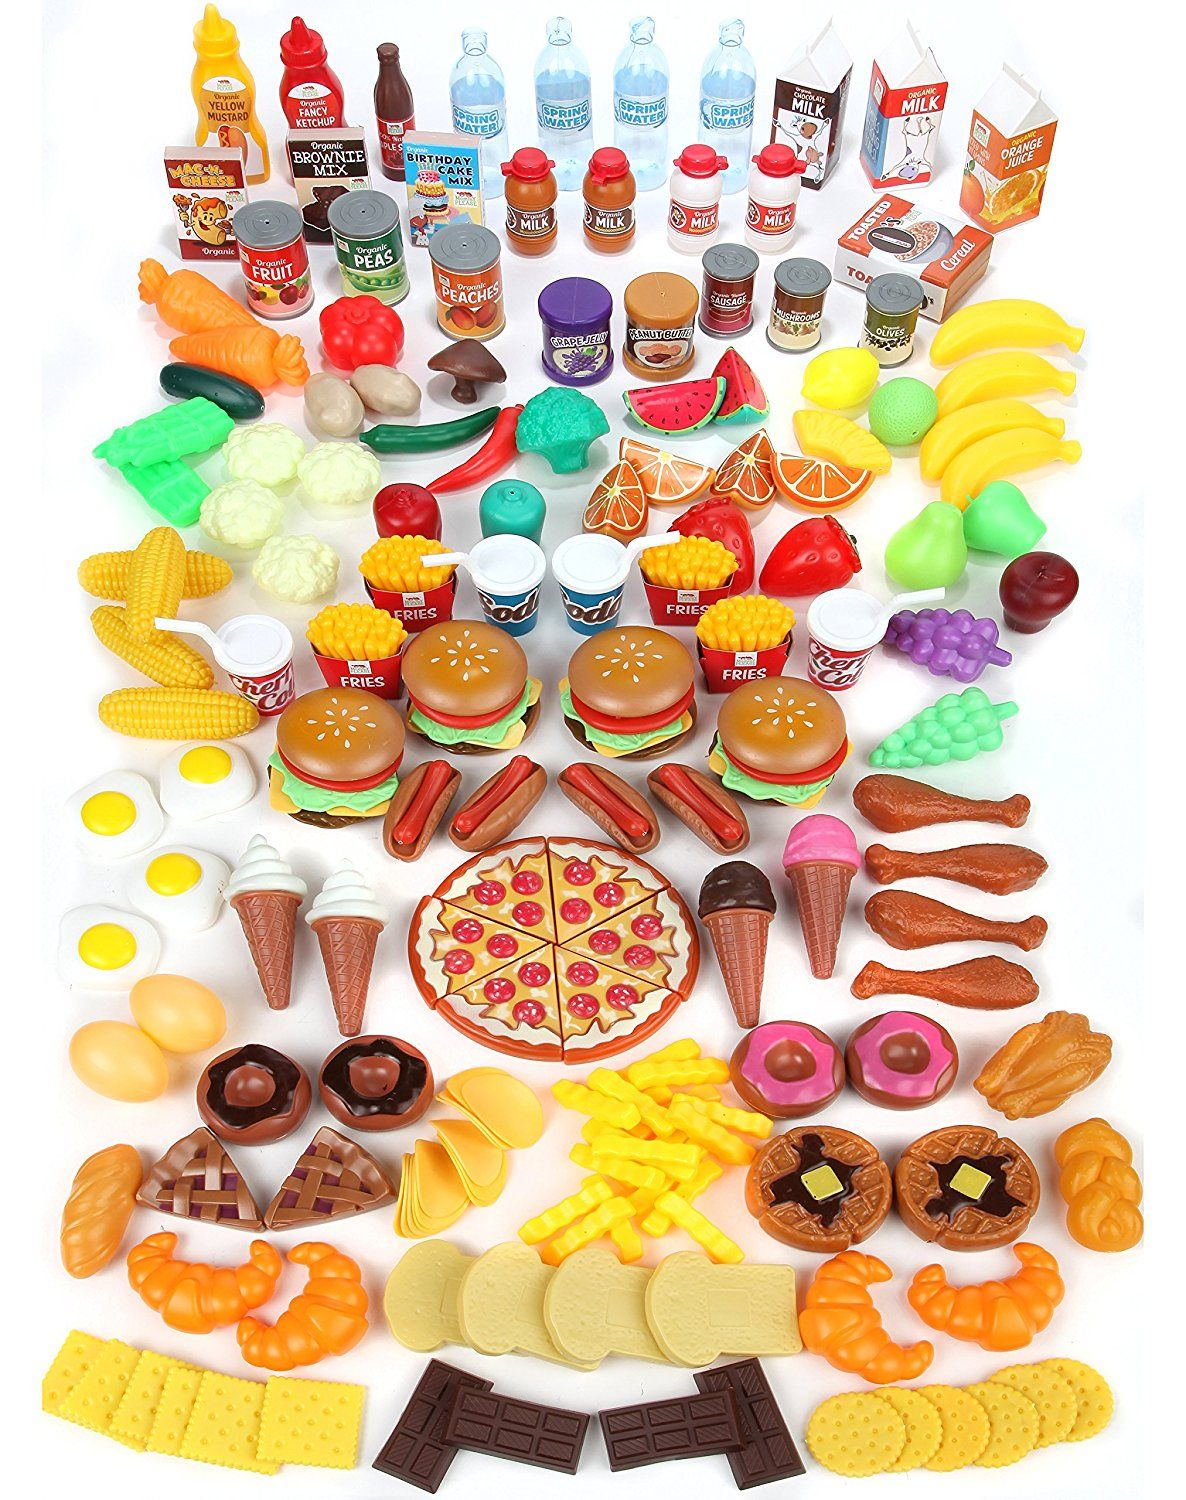 FUN LITTLE TOYS 128 pcs Play Food for Kids Kitchen Pretend Food Plastic Food